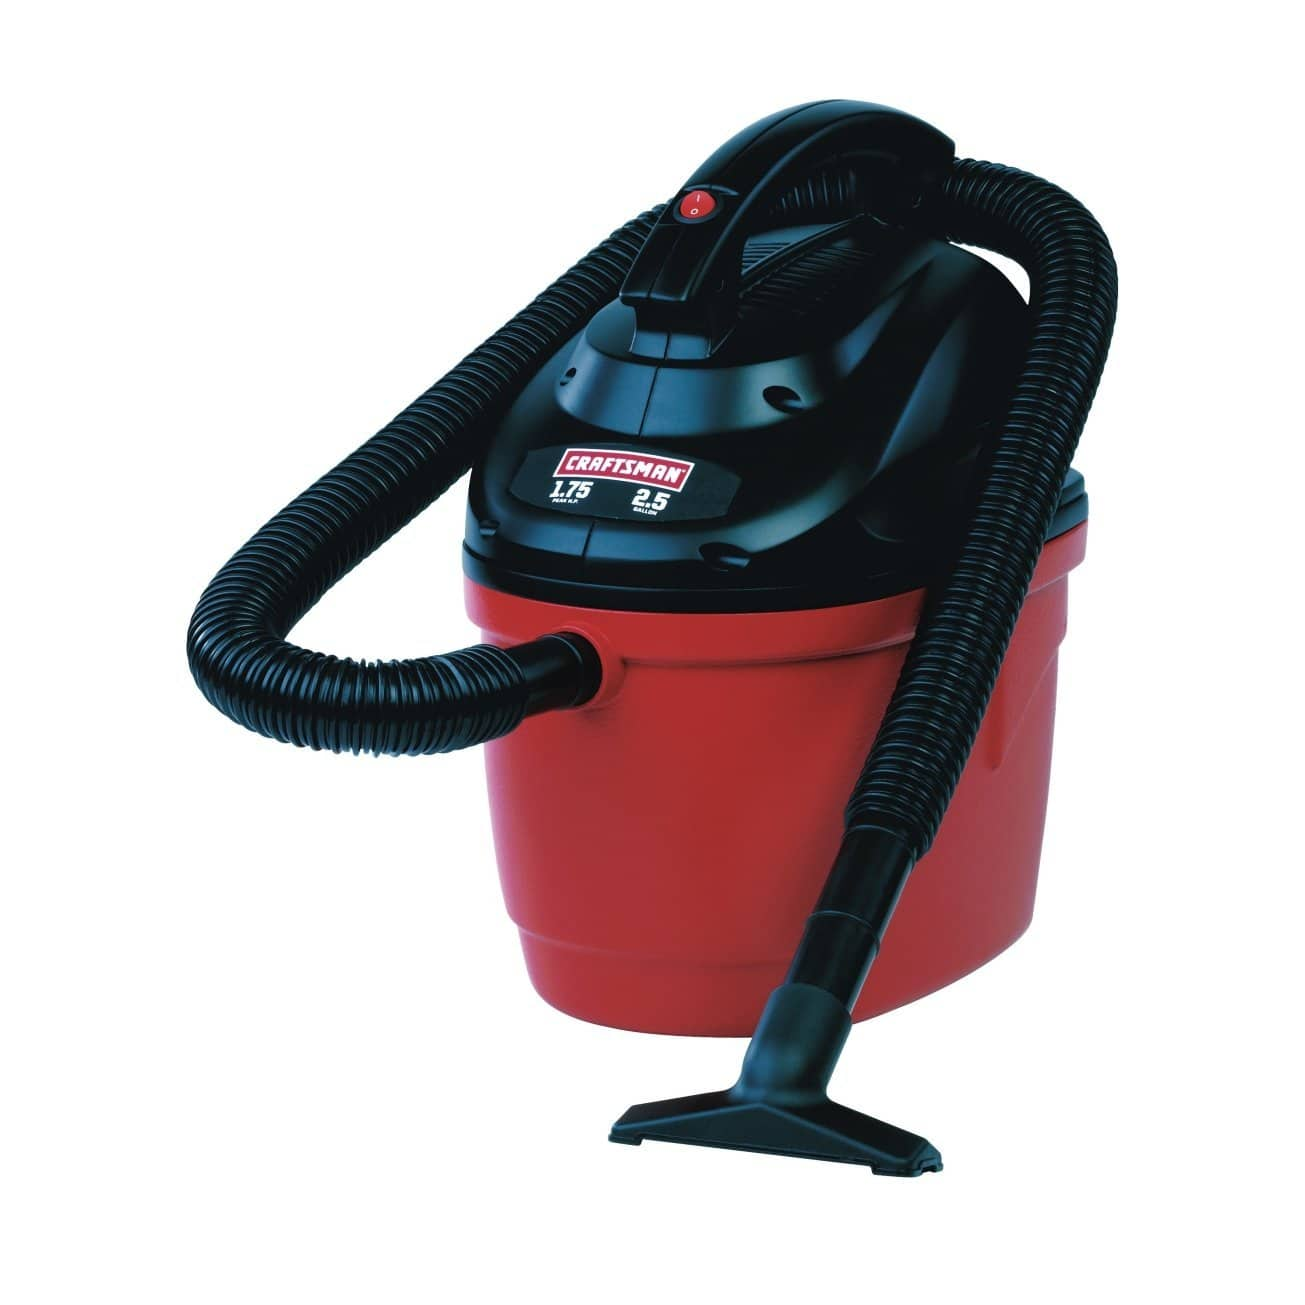 Craftsman 2.5 Gal. 1.75 HP Wet/Dry Vac (00917611) $19.99  @ ACE Hardware till 8/31